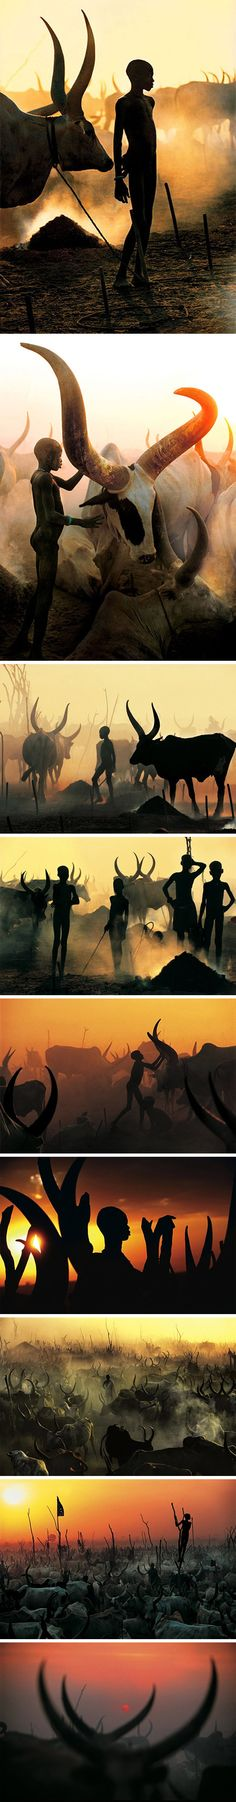 Dinka by Carol Beckwith & Angela Fisher